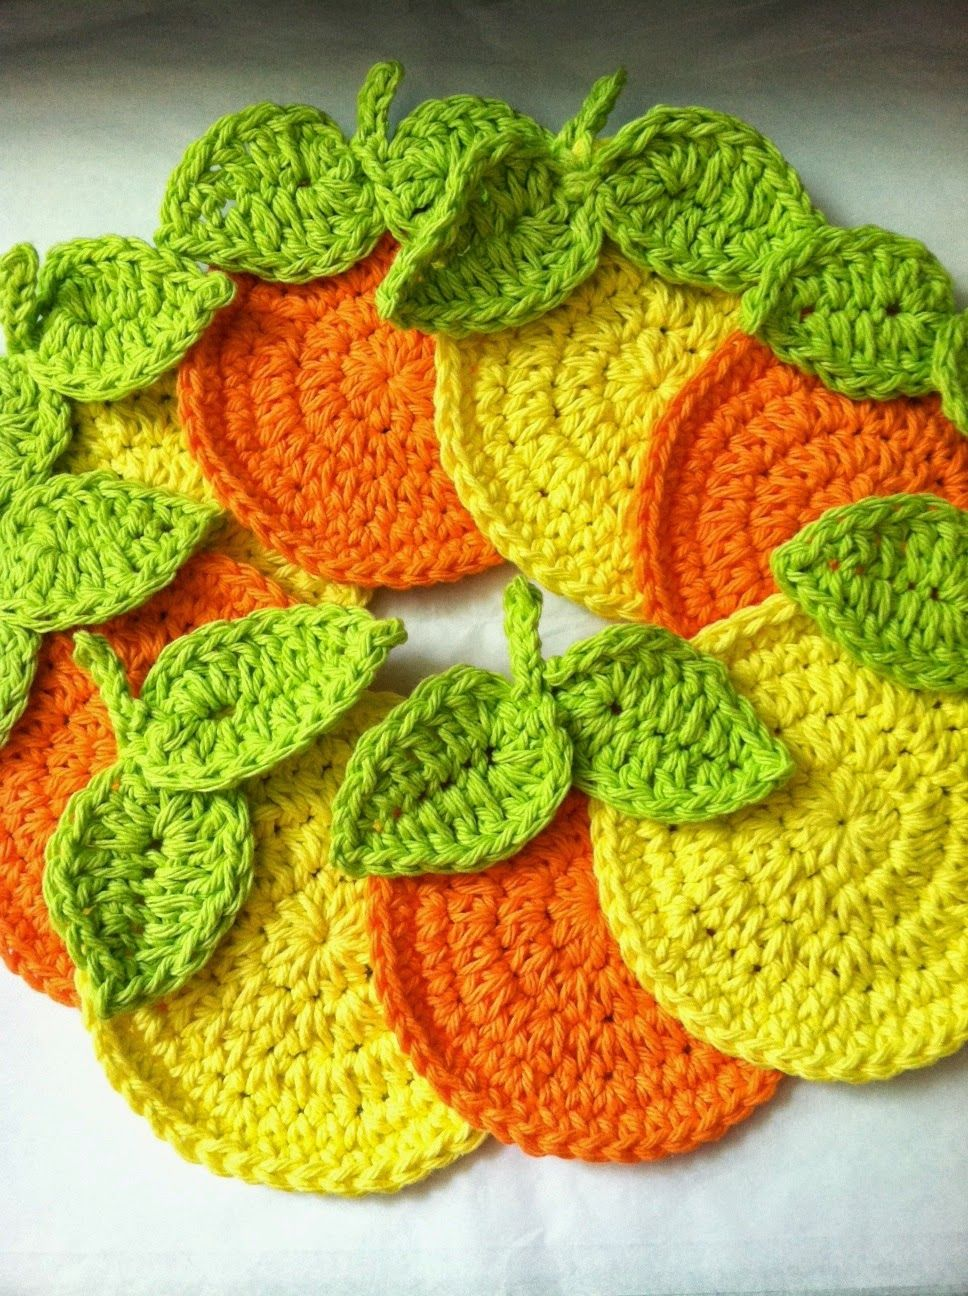 Lakeview cottage kids free pattern for oranges crochet coaster bankloansurffo Images